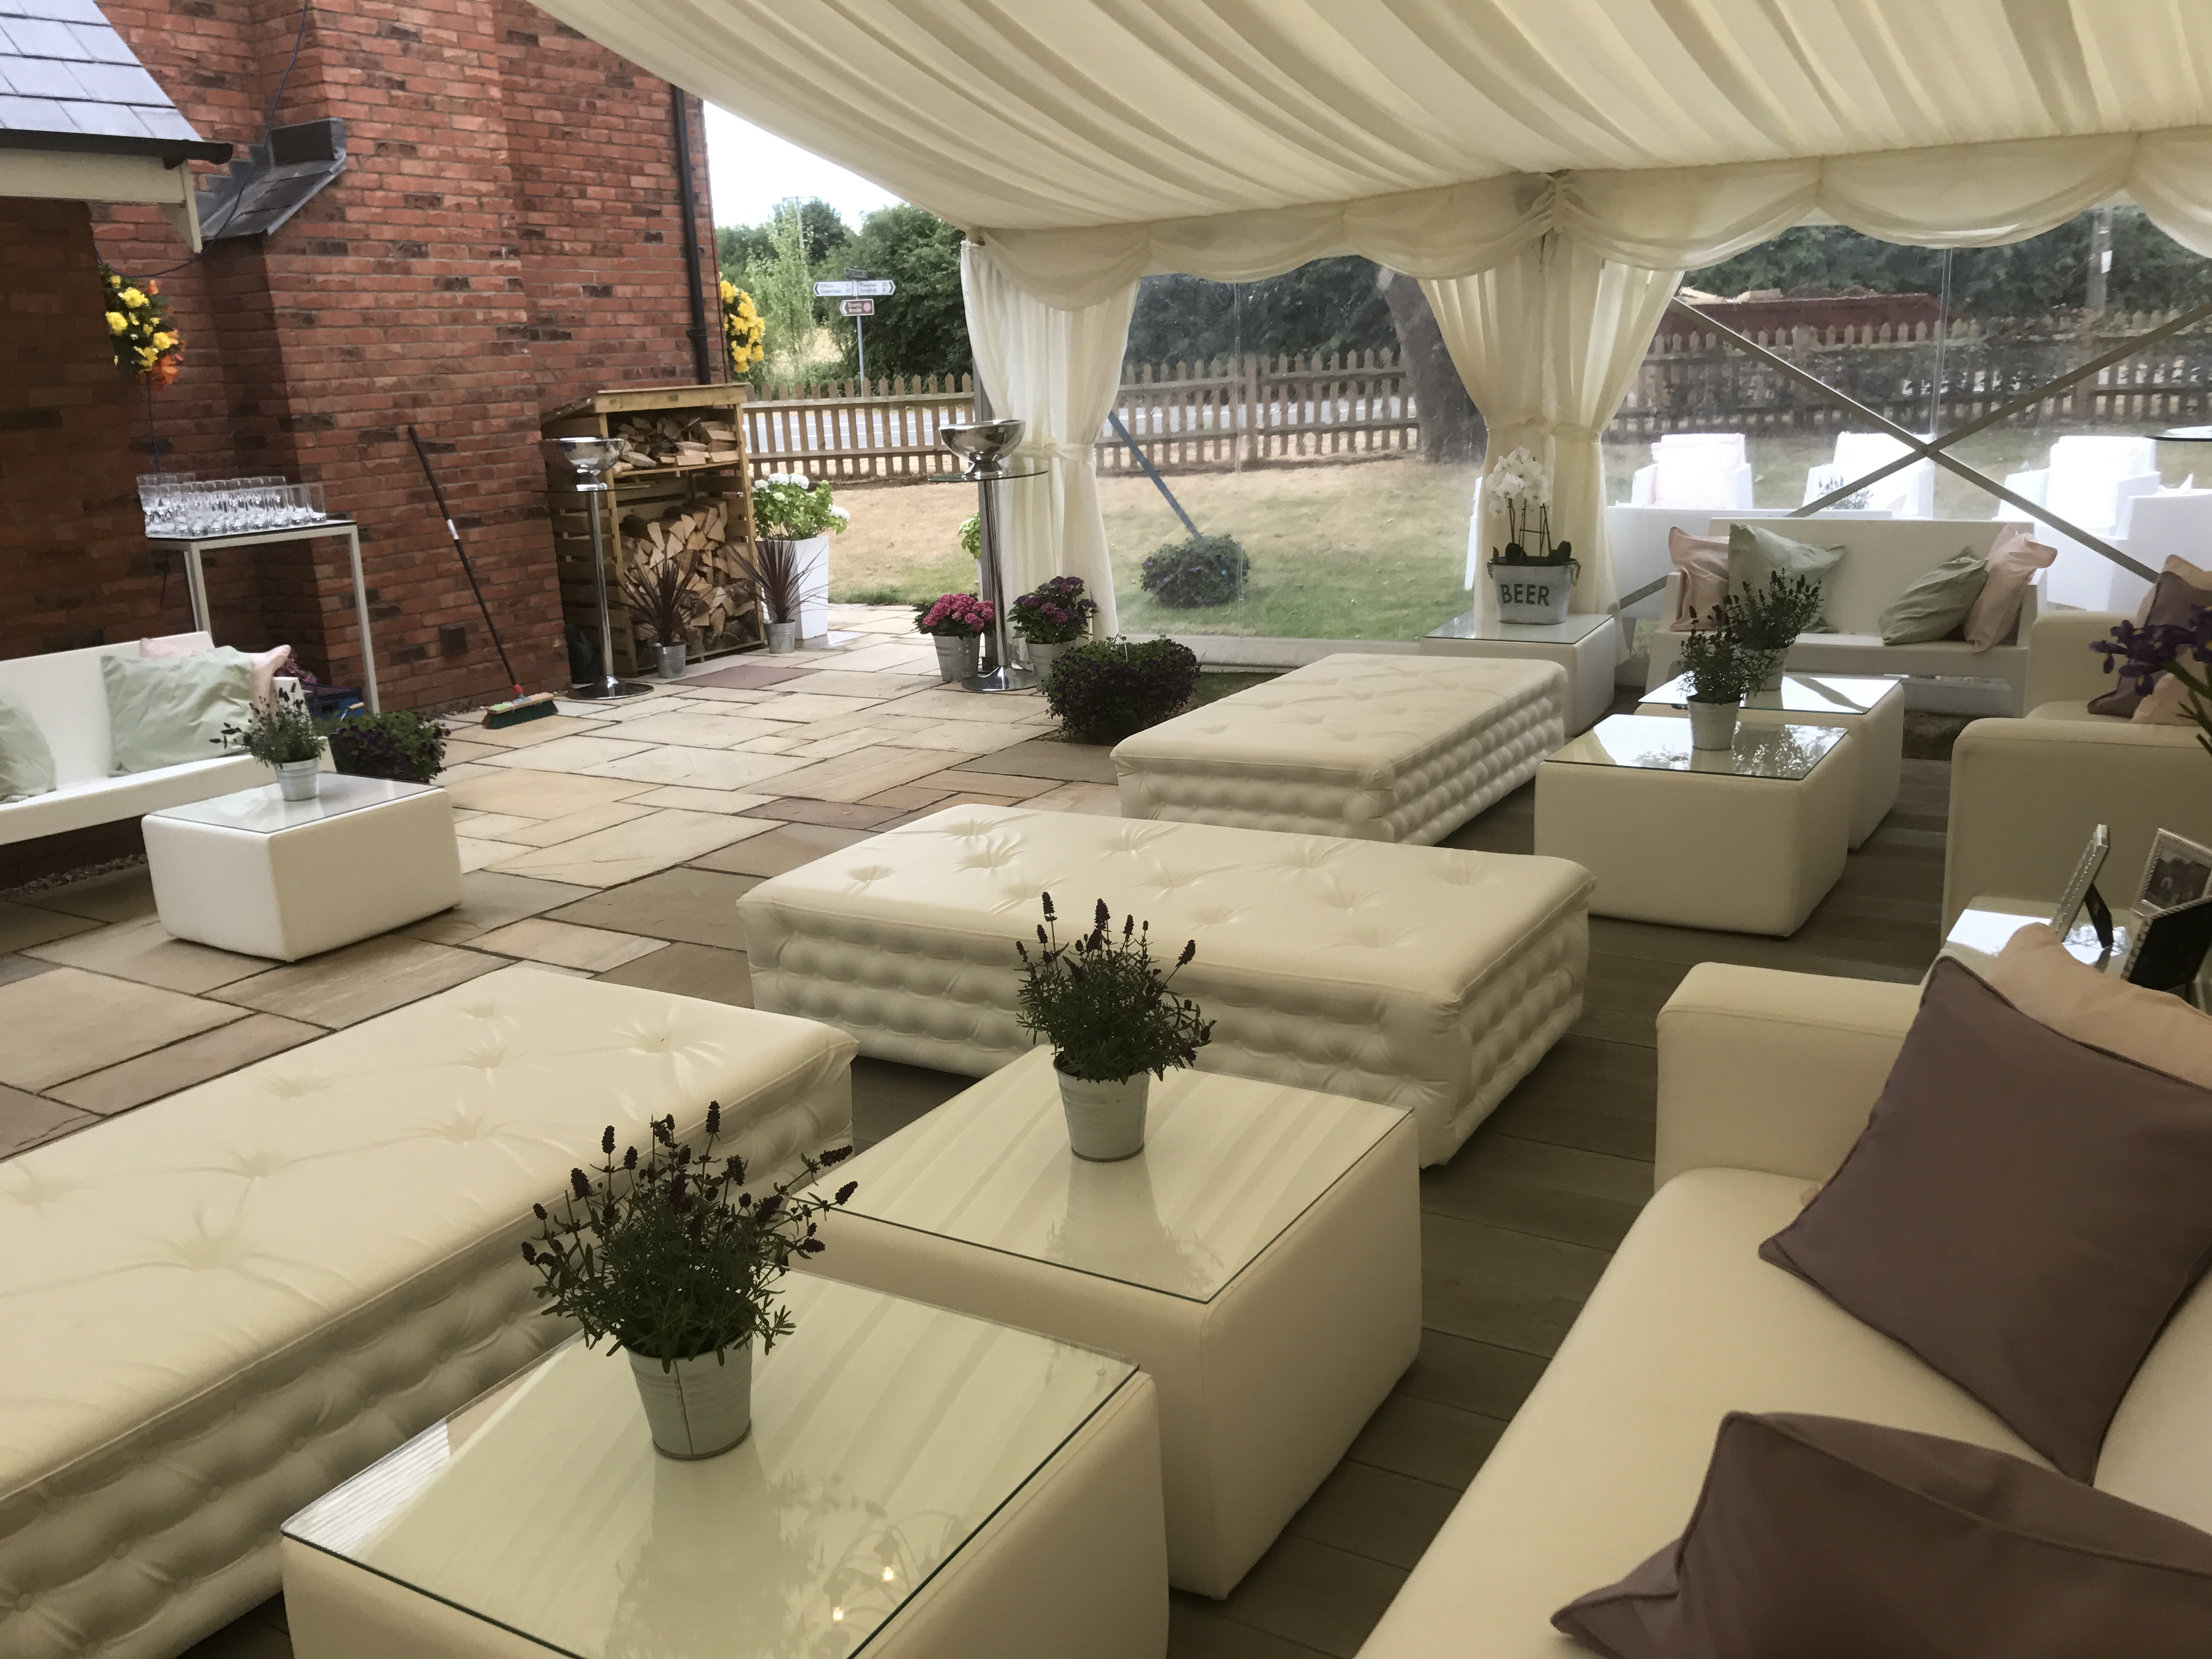 White faux leather Chesterfield Benches with matching tables and flowers in marquee